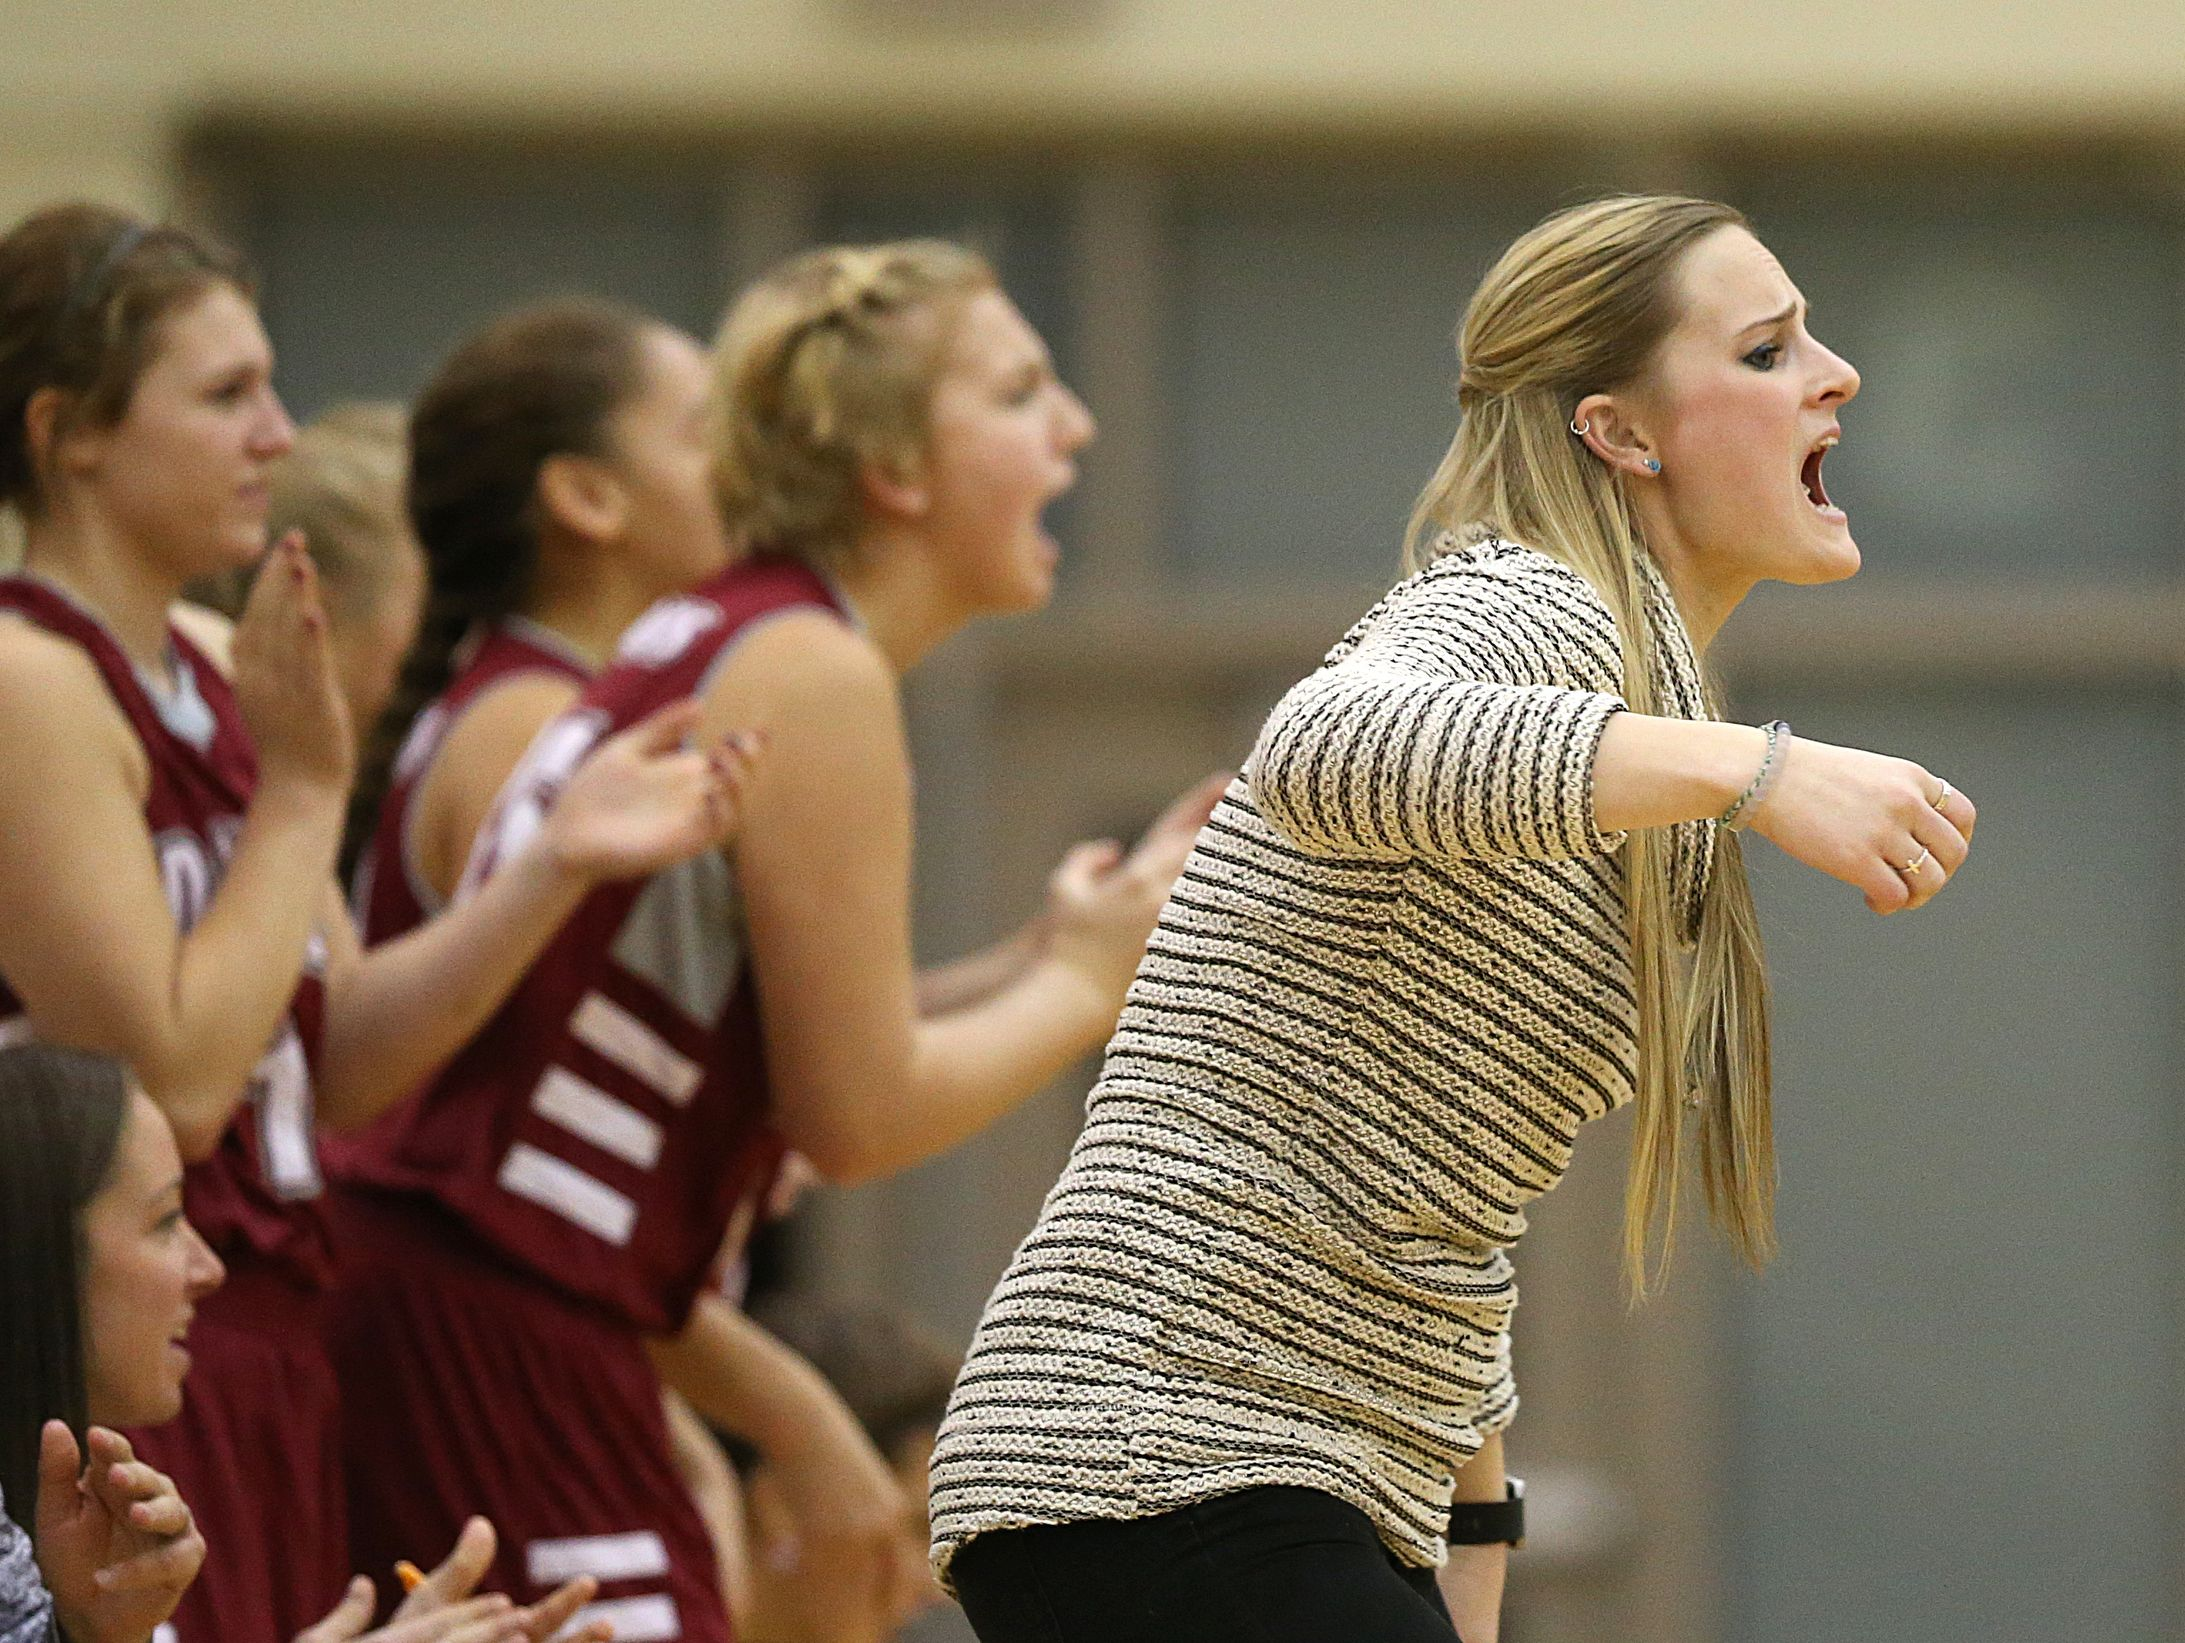 Danville Warriors coach Kaley May shouts at players during second half action of Hendricks County girls basketball finals at Plainfield High School, Jan. 7, 2016.